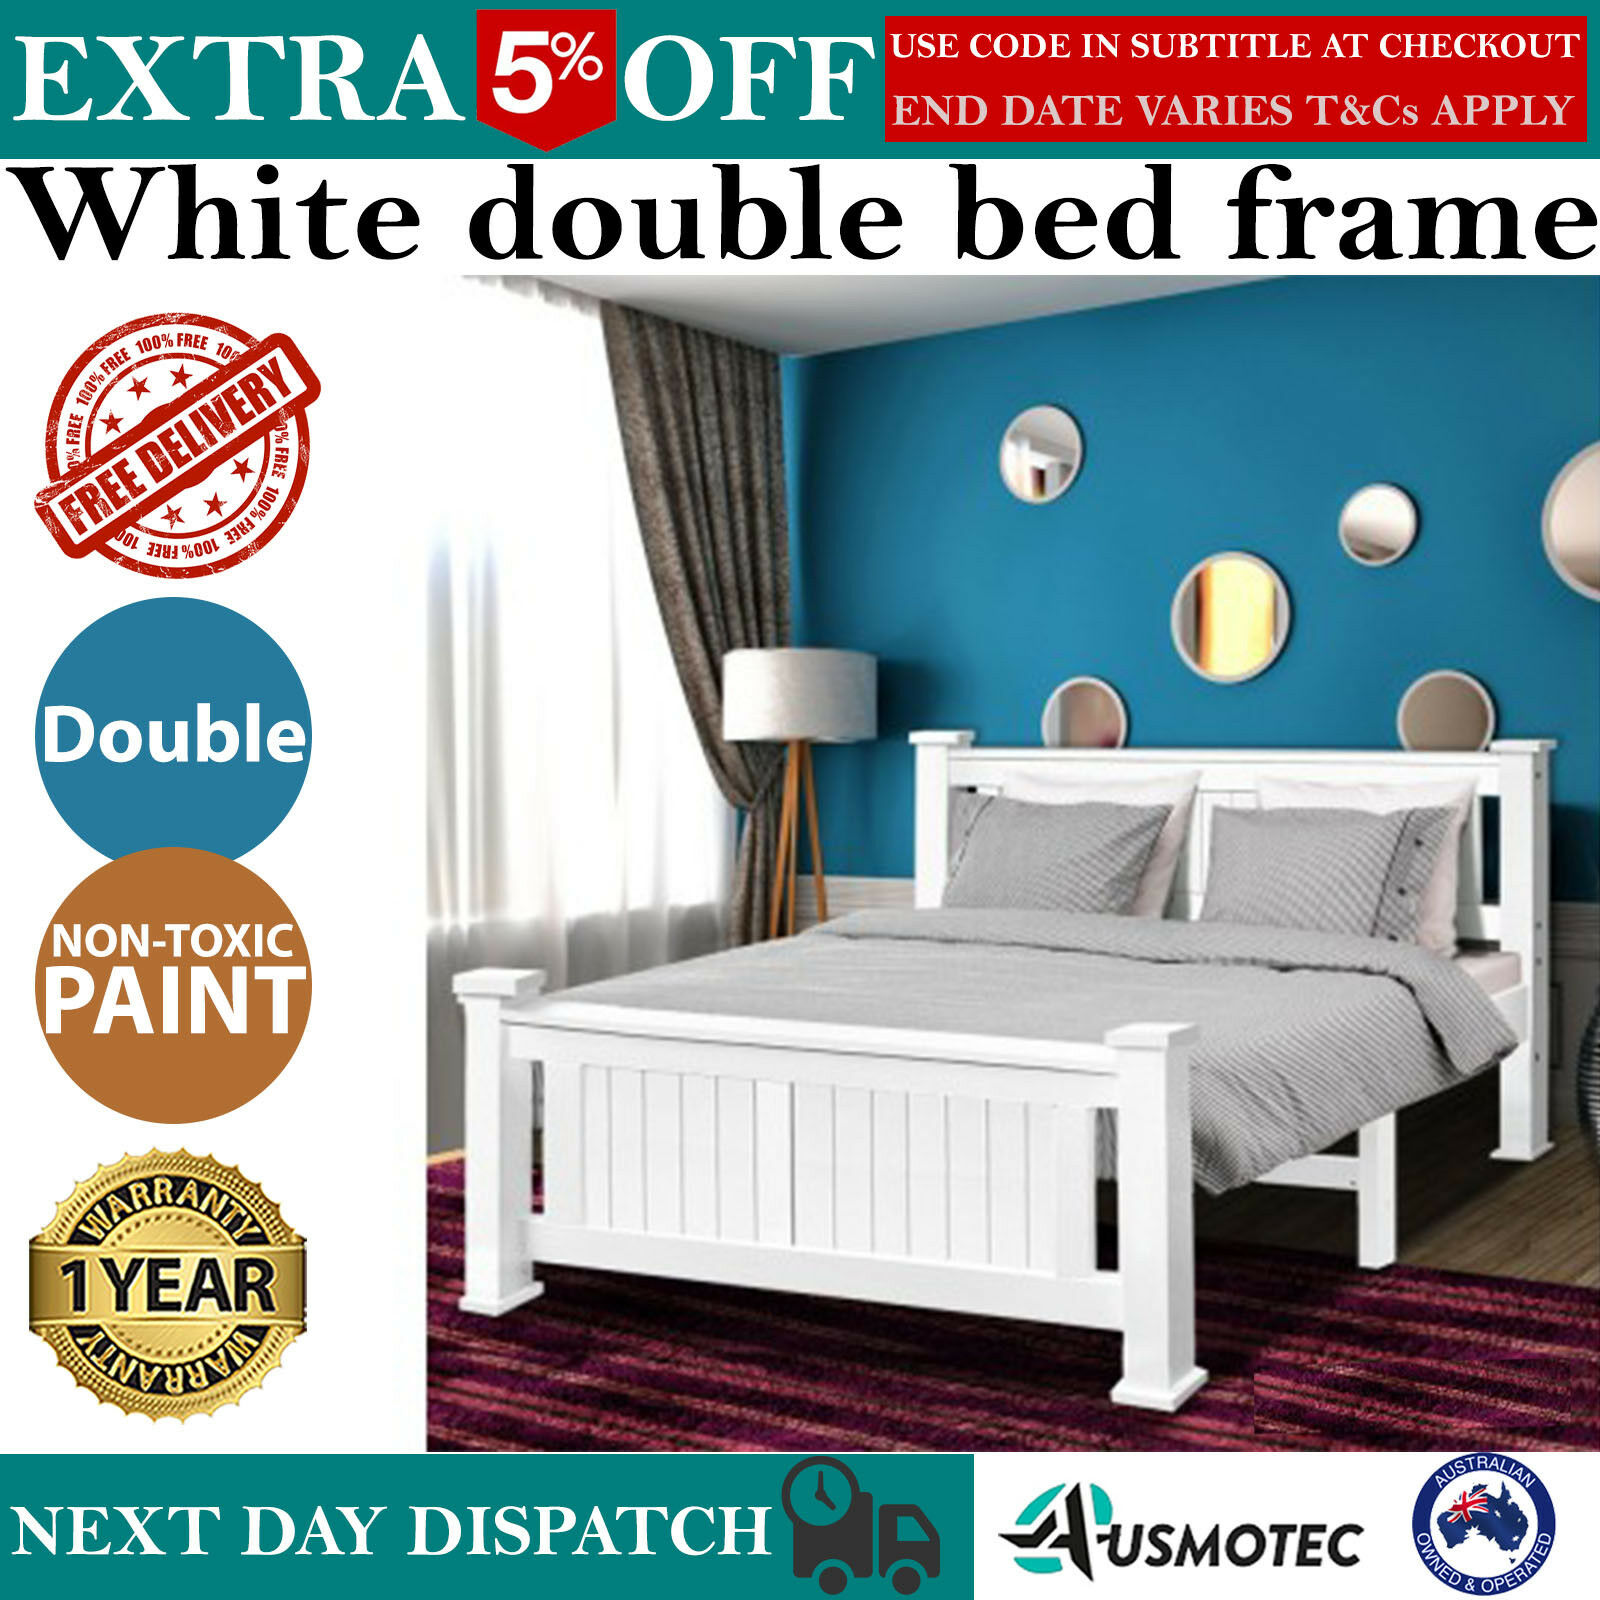 Details About New White Double Bed Frame W Headboard Pine Wood Timber Slat Bedding Bedroom